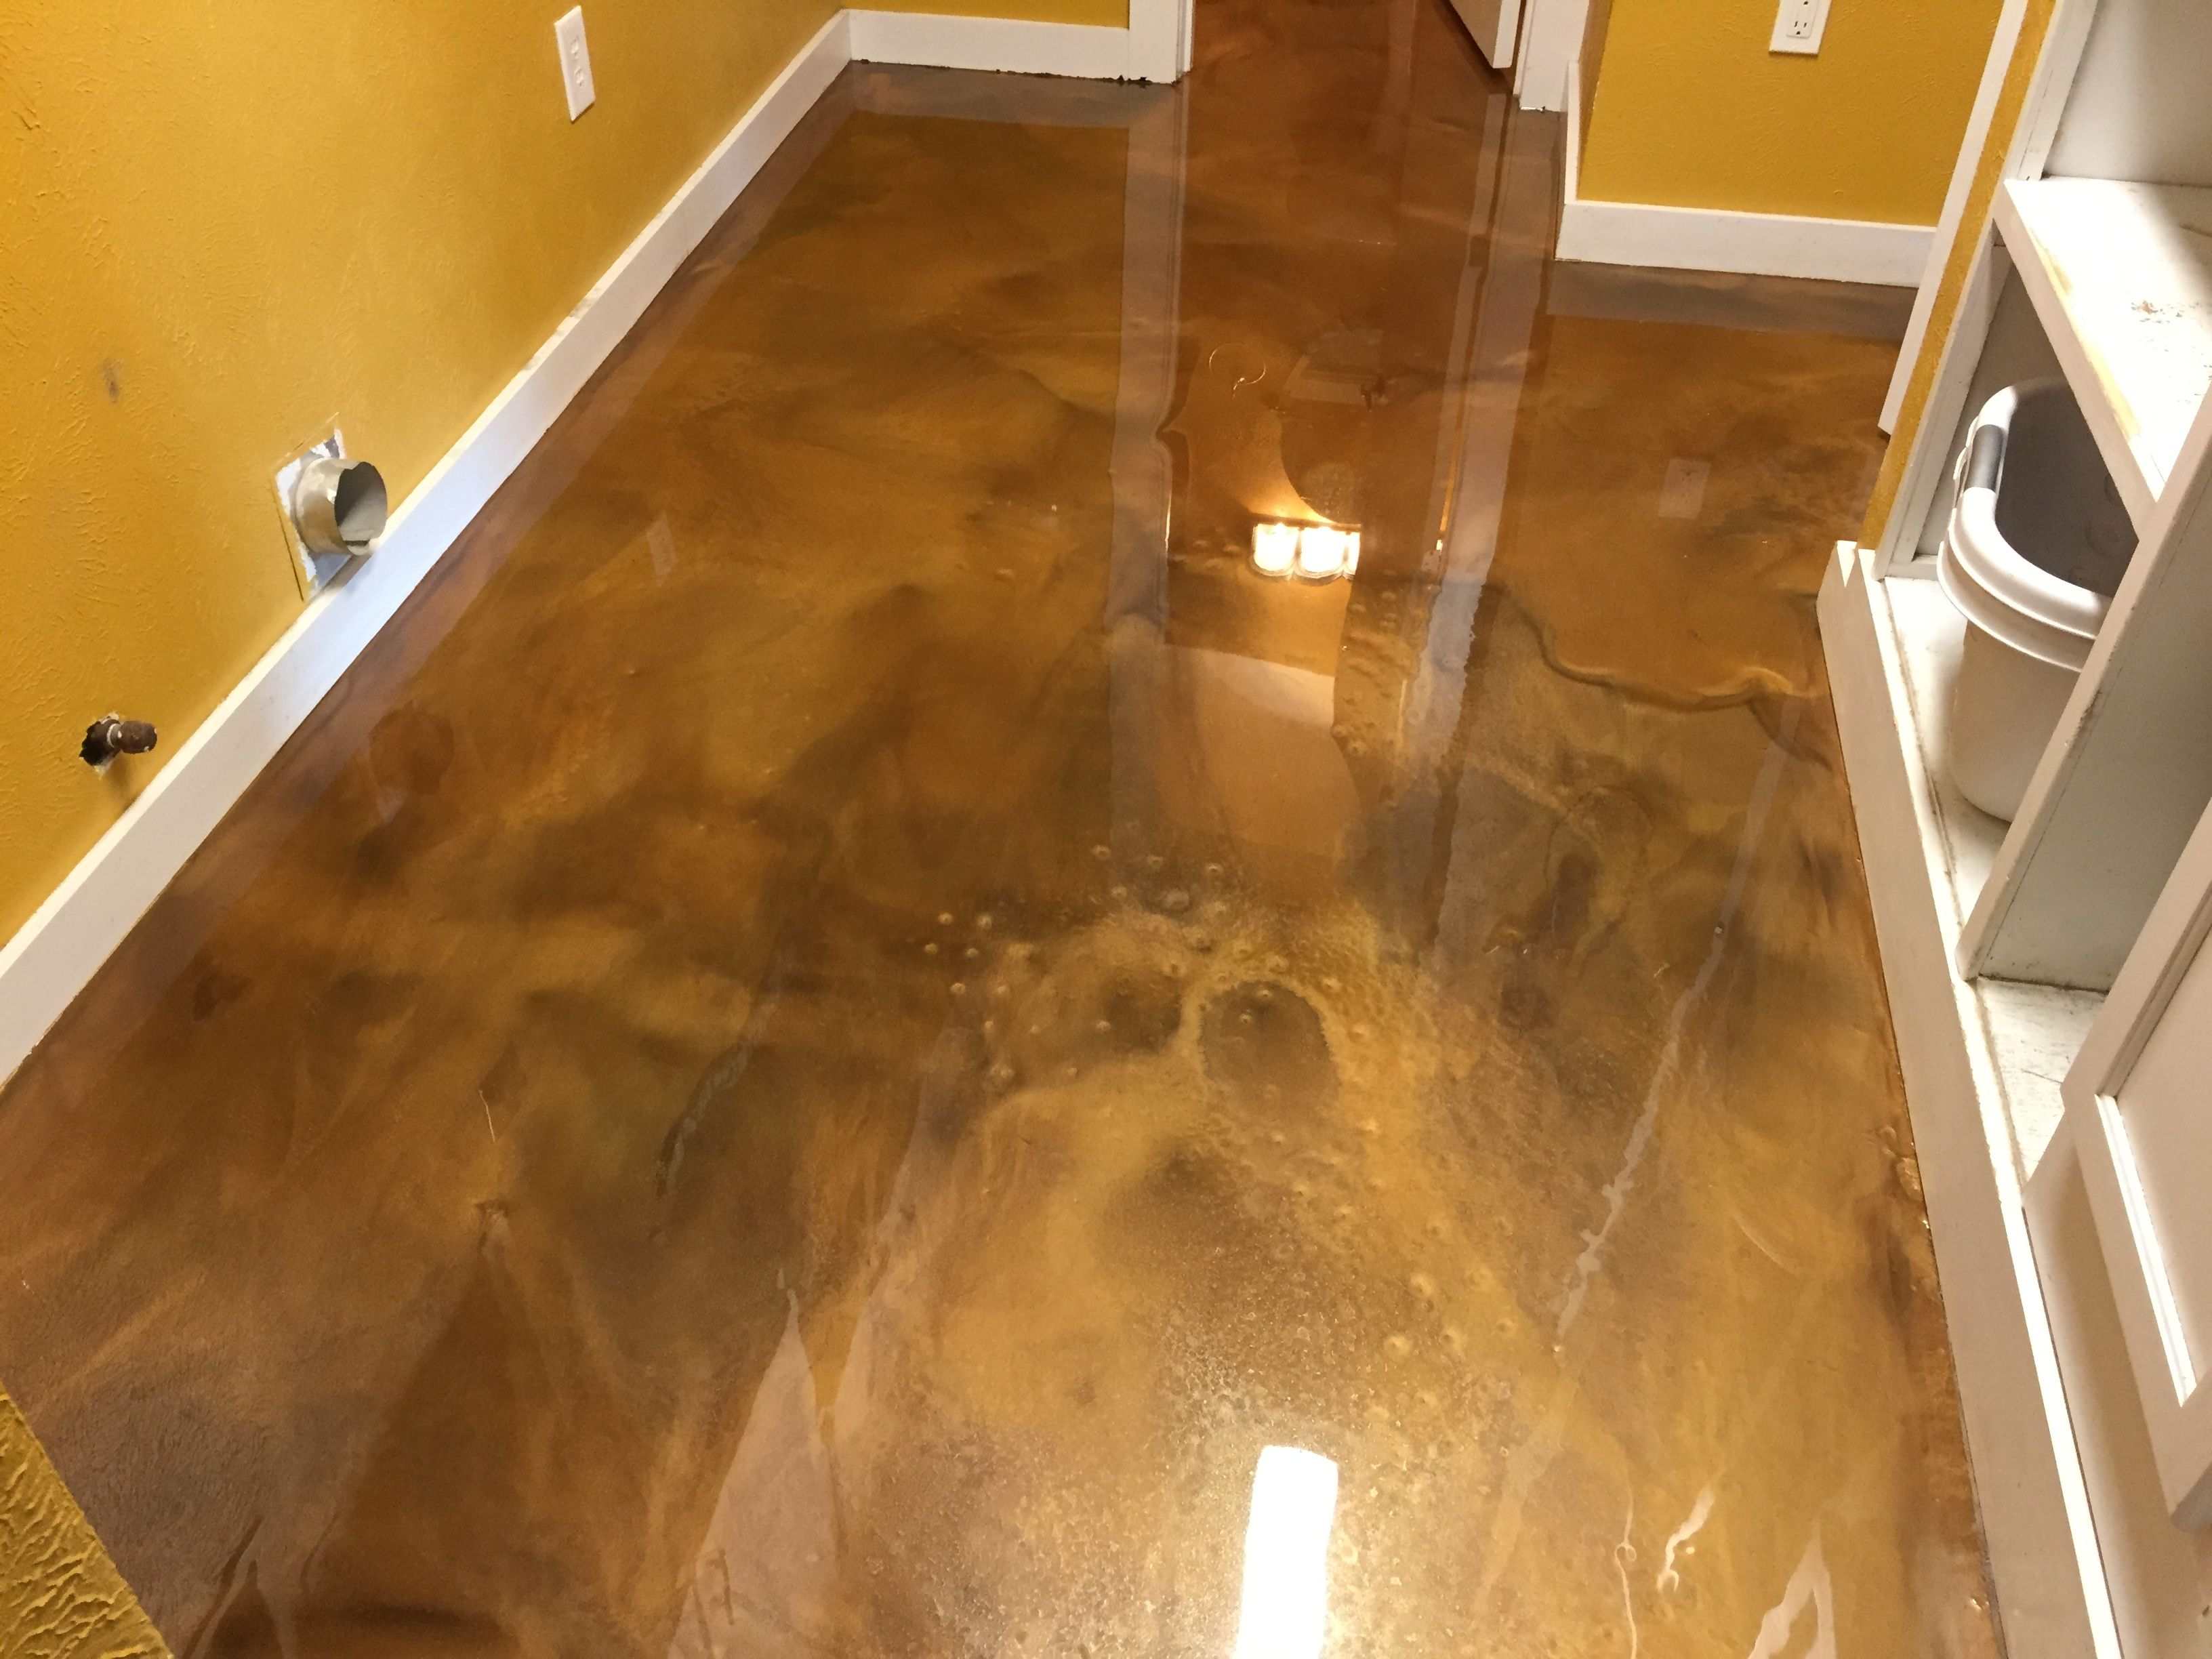 Metallic Epoxy Floor Coating For A Truly One Of Kind